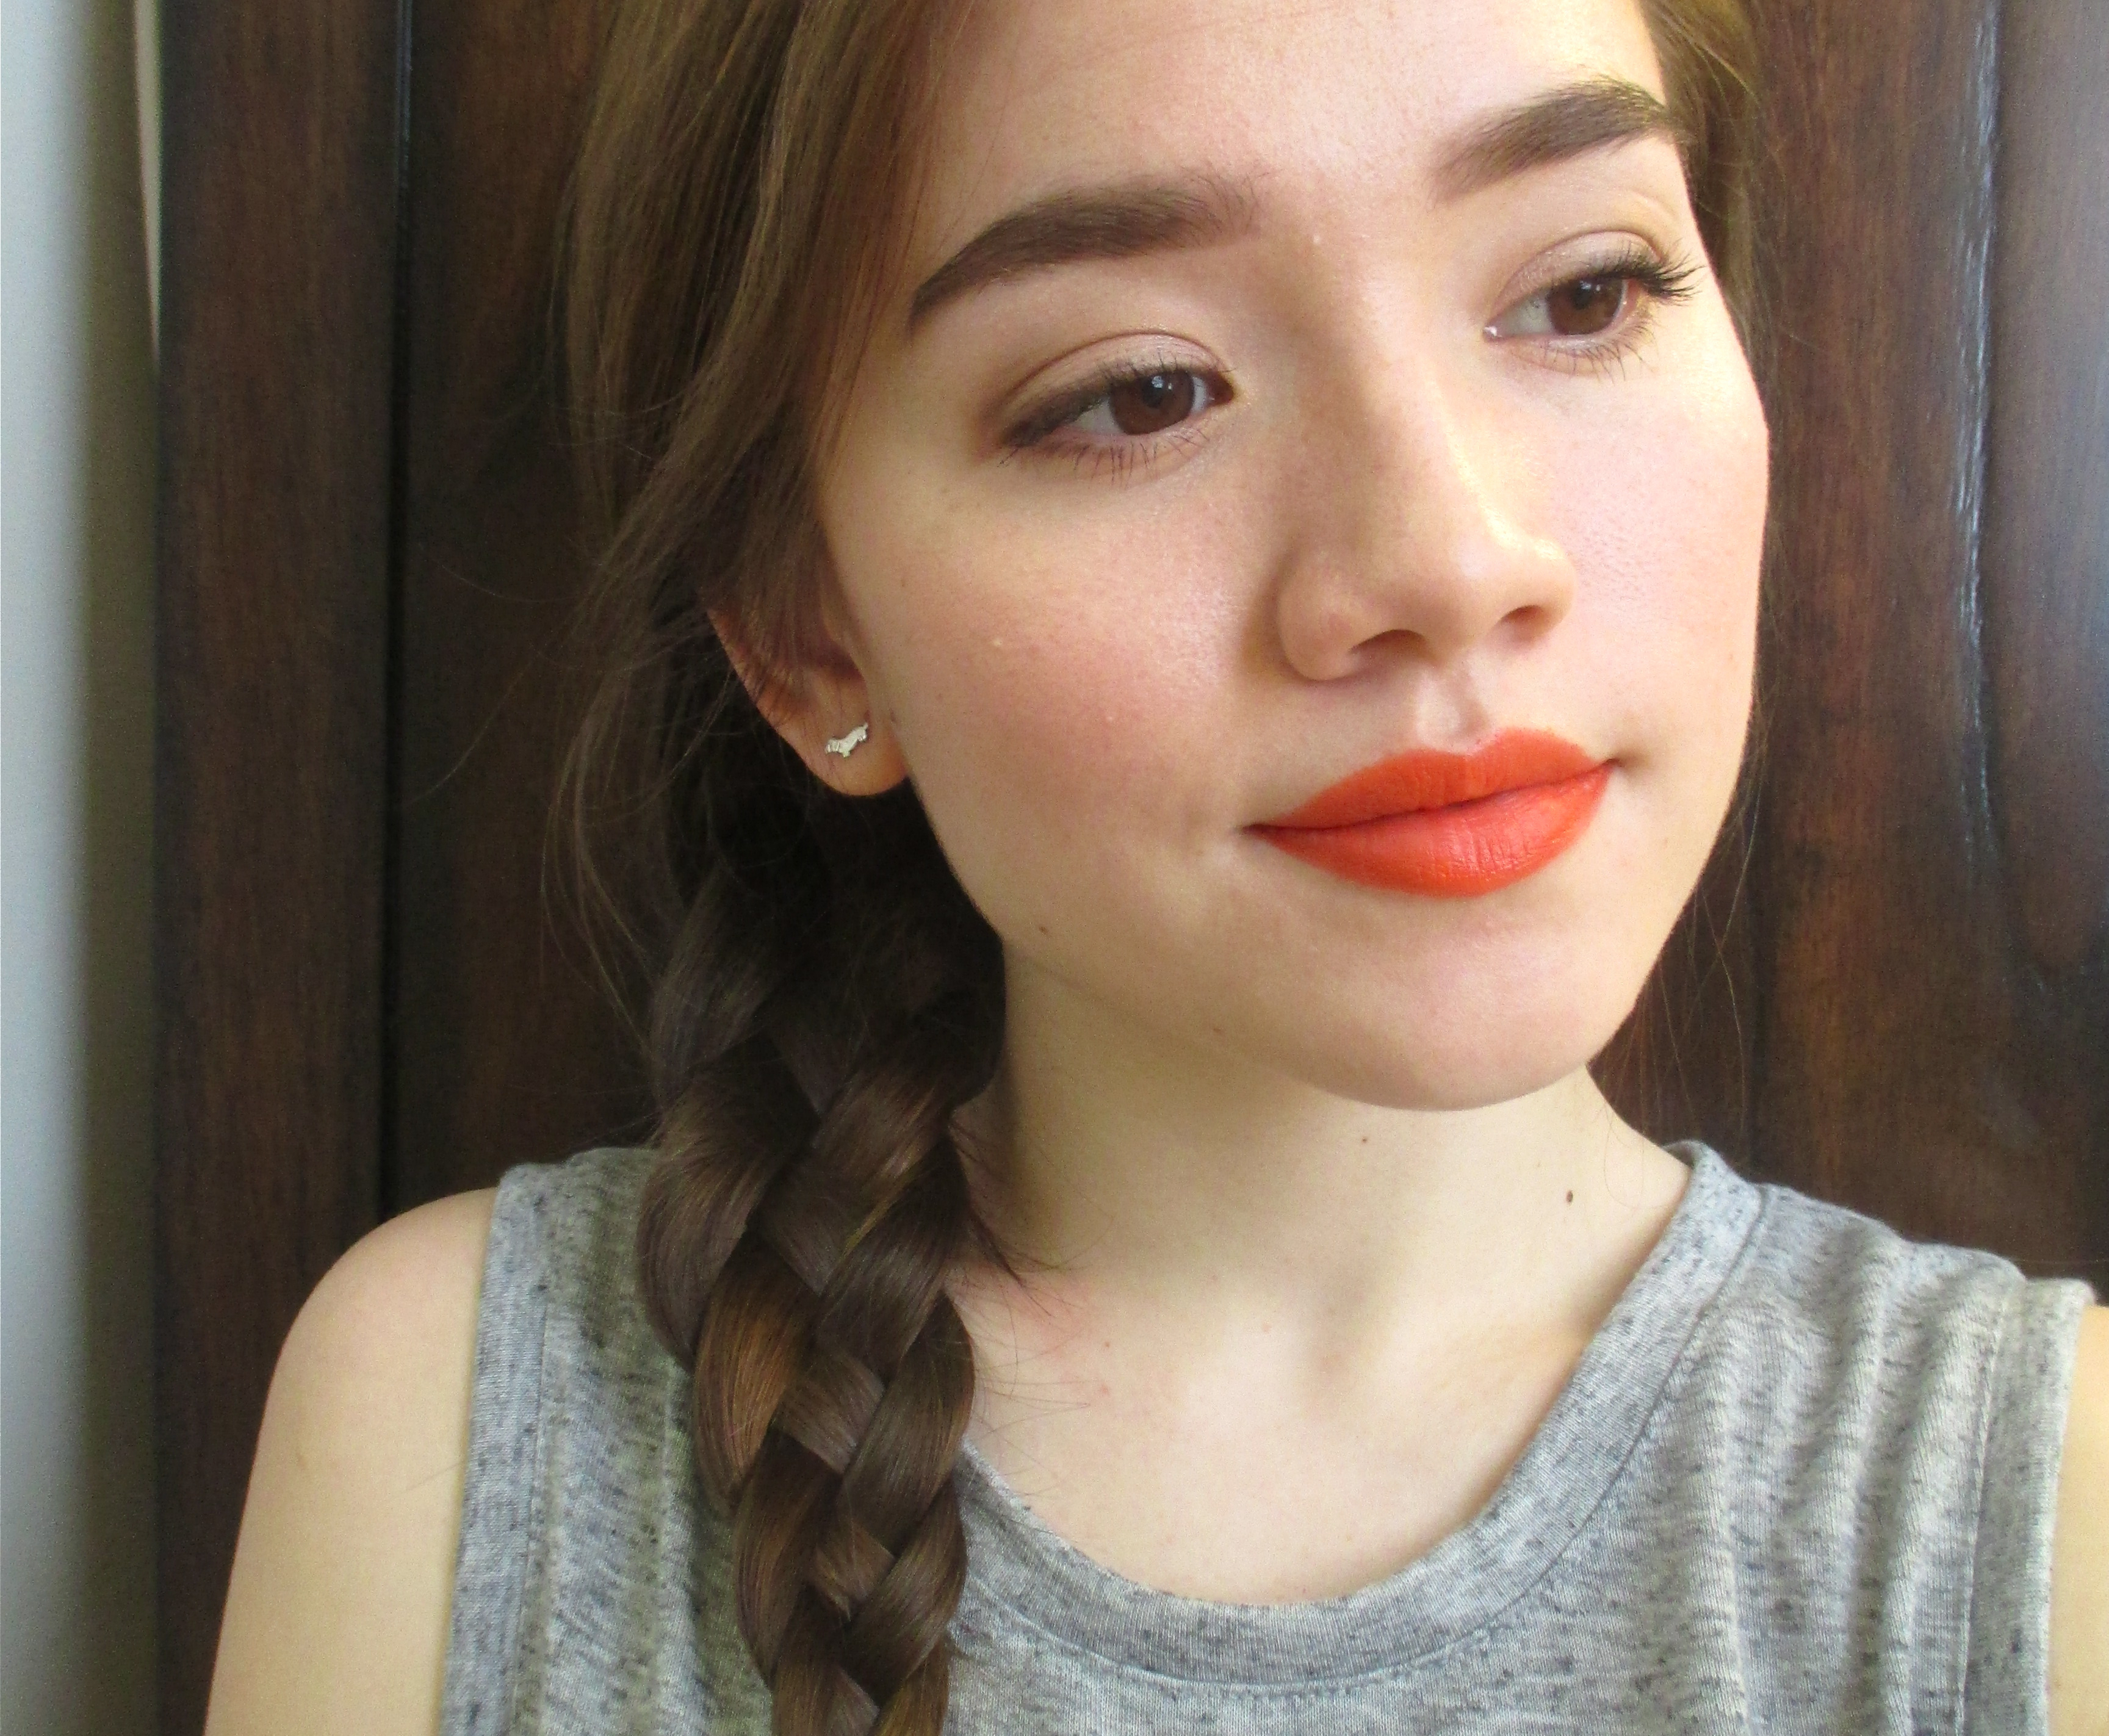 Newest Mermaid Inception Braid Hairstyles Within 10 Simple Ways To Make Any Braid Look Even Cooler So It'll (View 19 of 20)